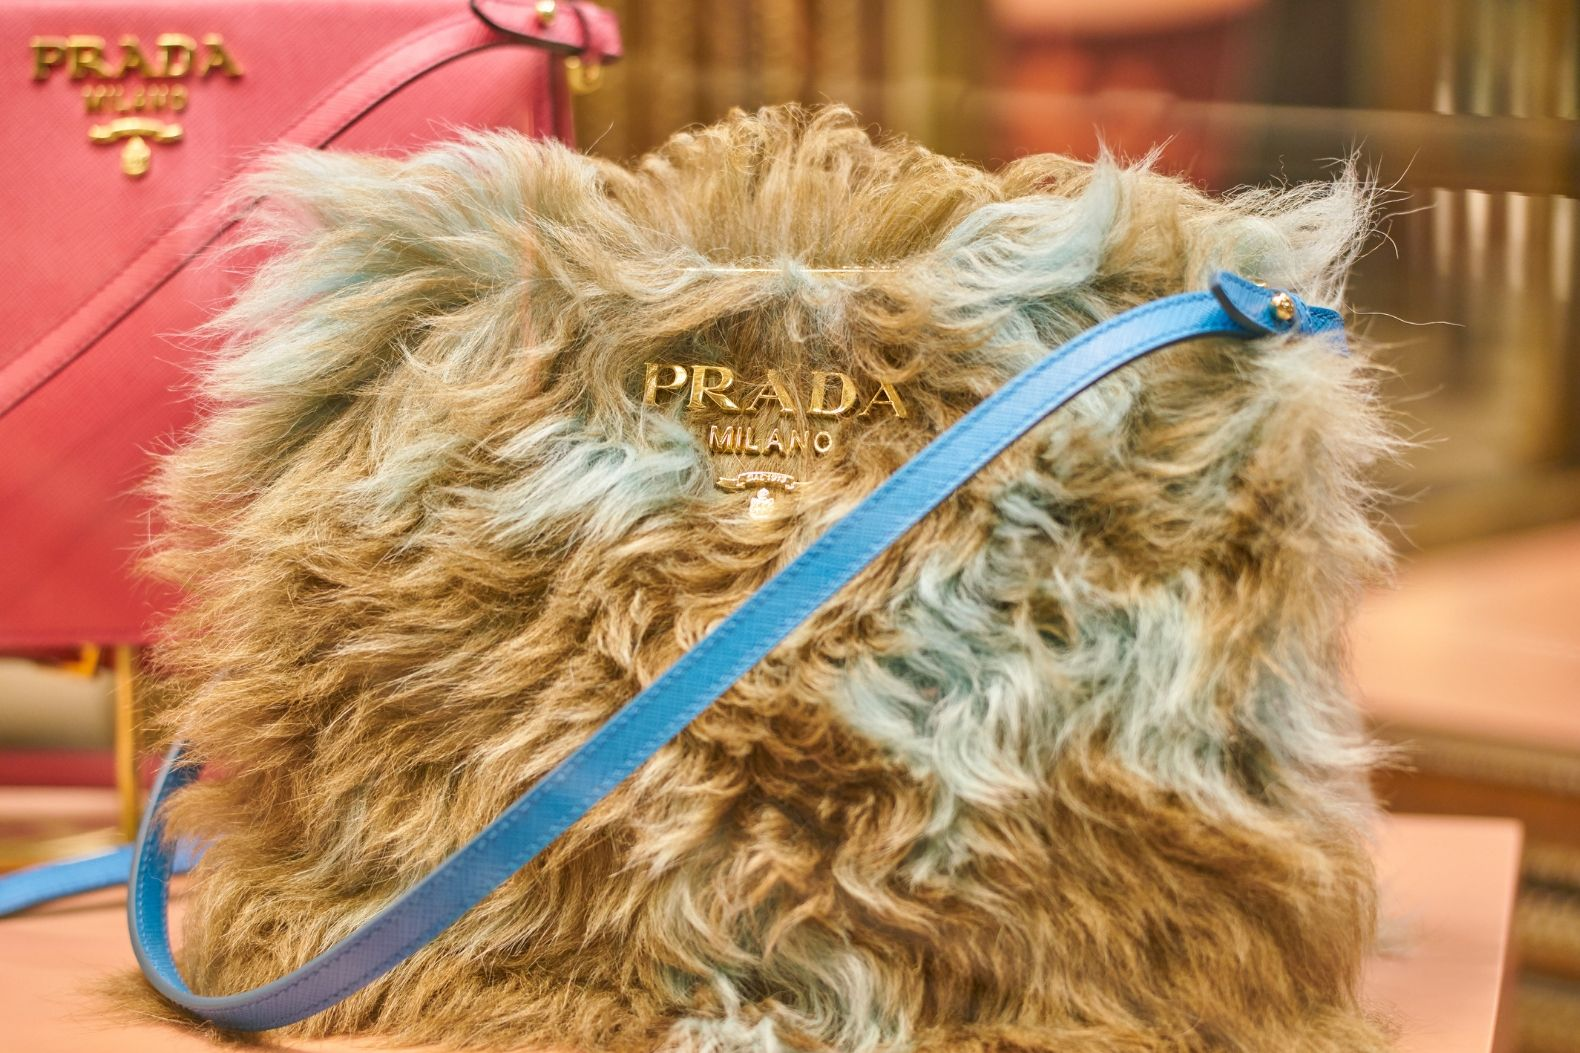 Prada announces a ban on fur